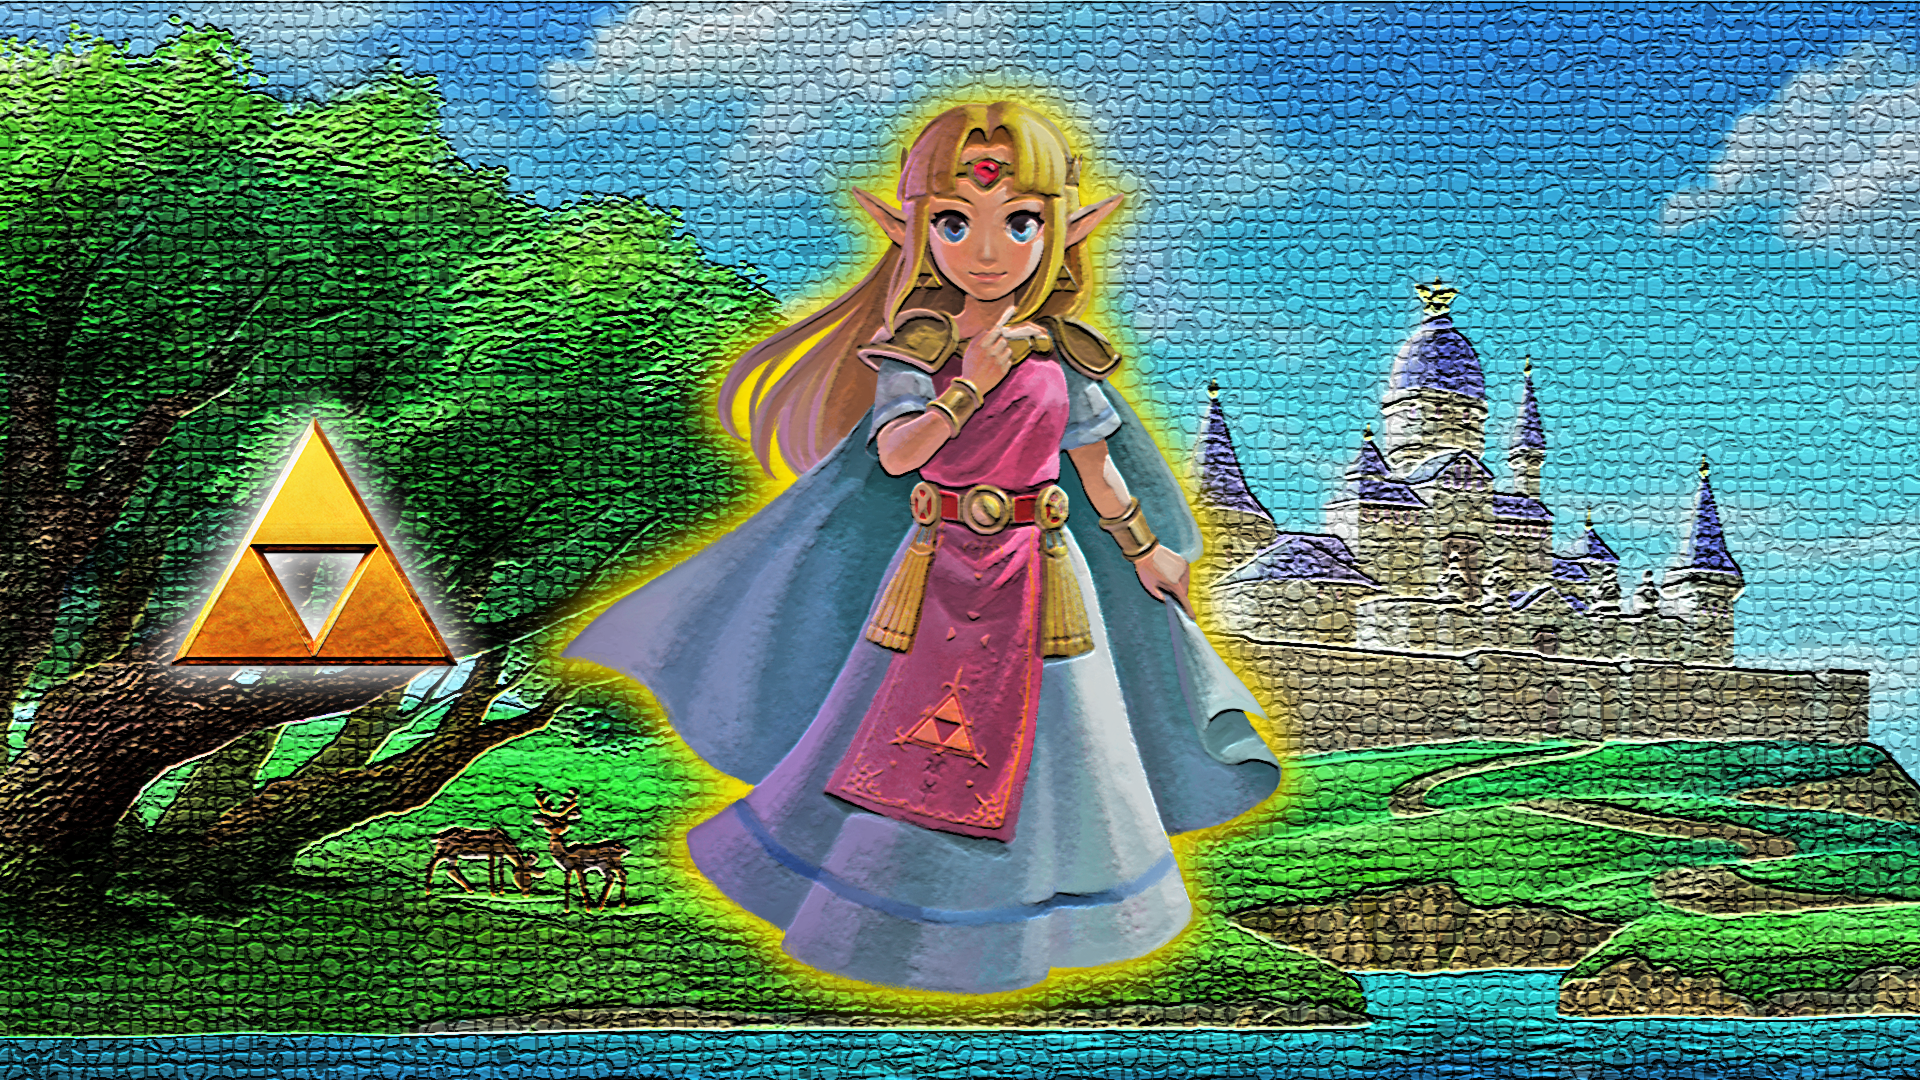 Princess Zelda Wallpaper by Glench 1920x1080